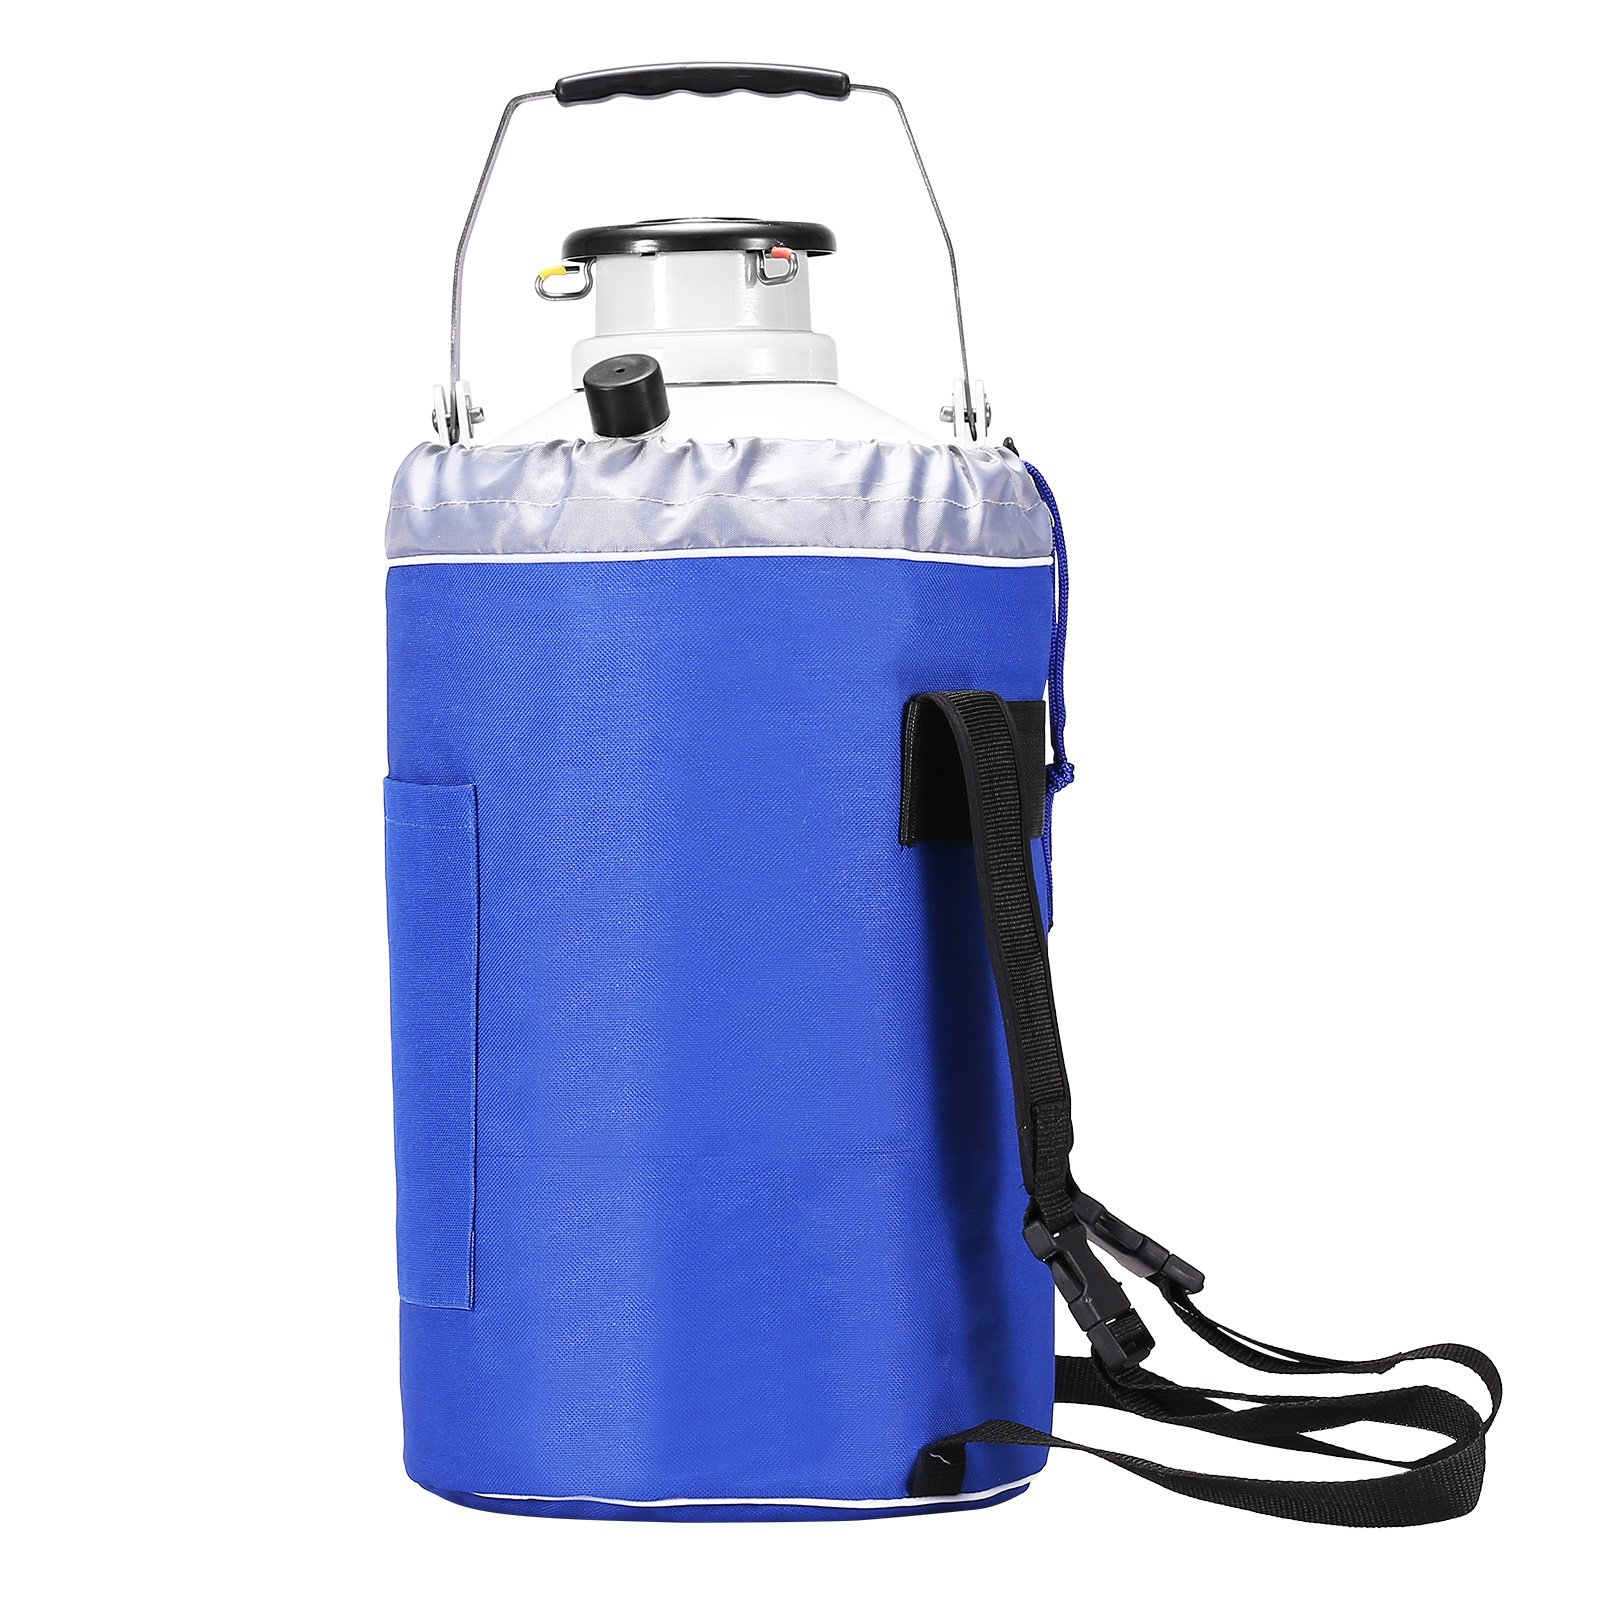 BestEquip Liquid Nitrogen Container Aluminum Alloy Liquid Nitrogen Tank Cryogenic Container with 3 Canisters and Carry Bag (3L) by BestEquip (Image #1)